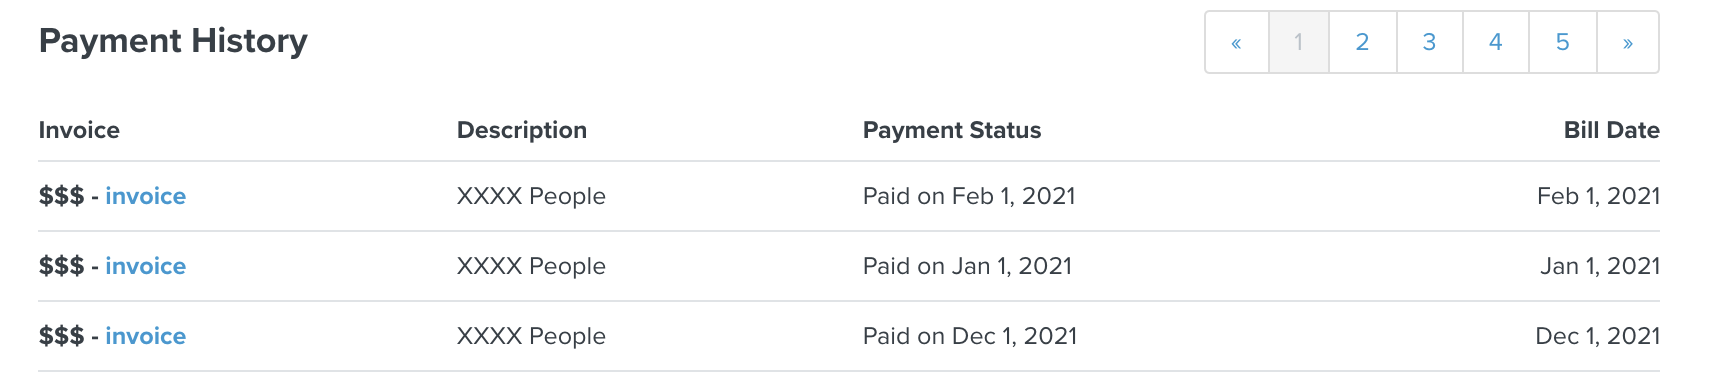 payment_history_update.png